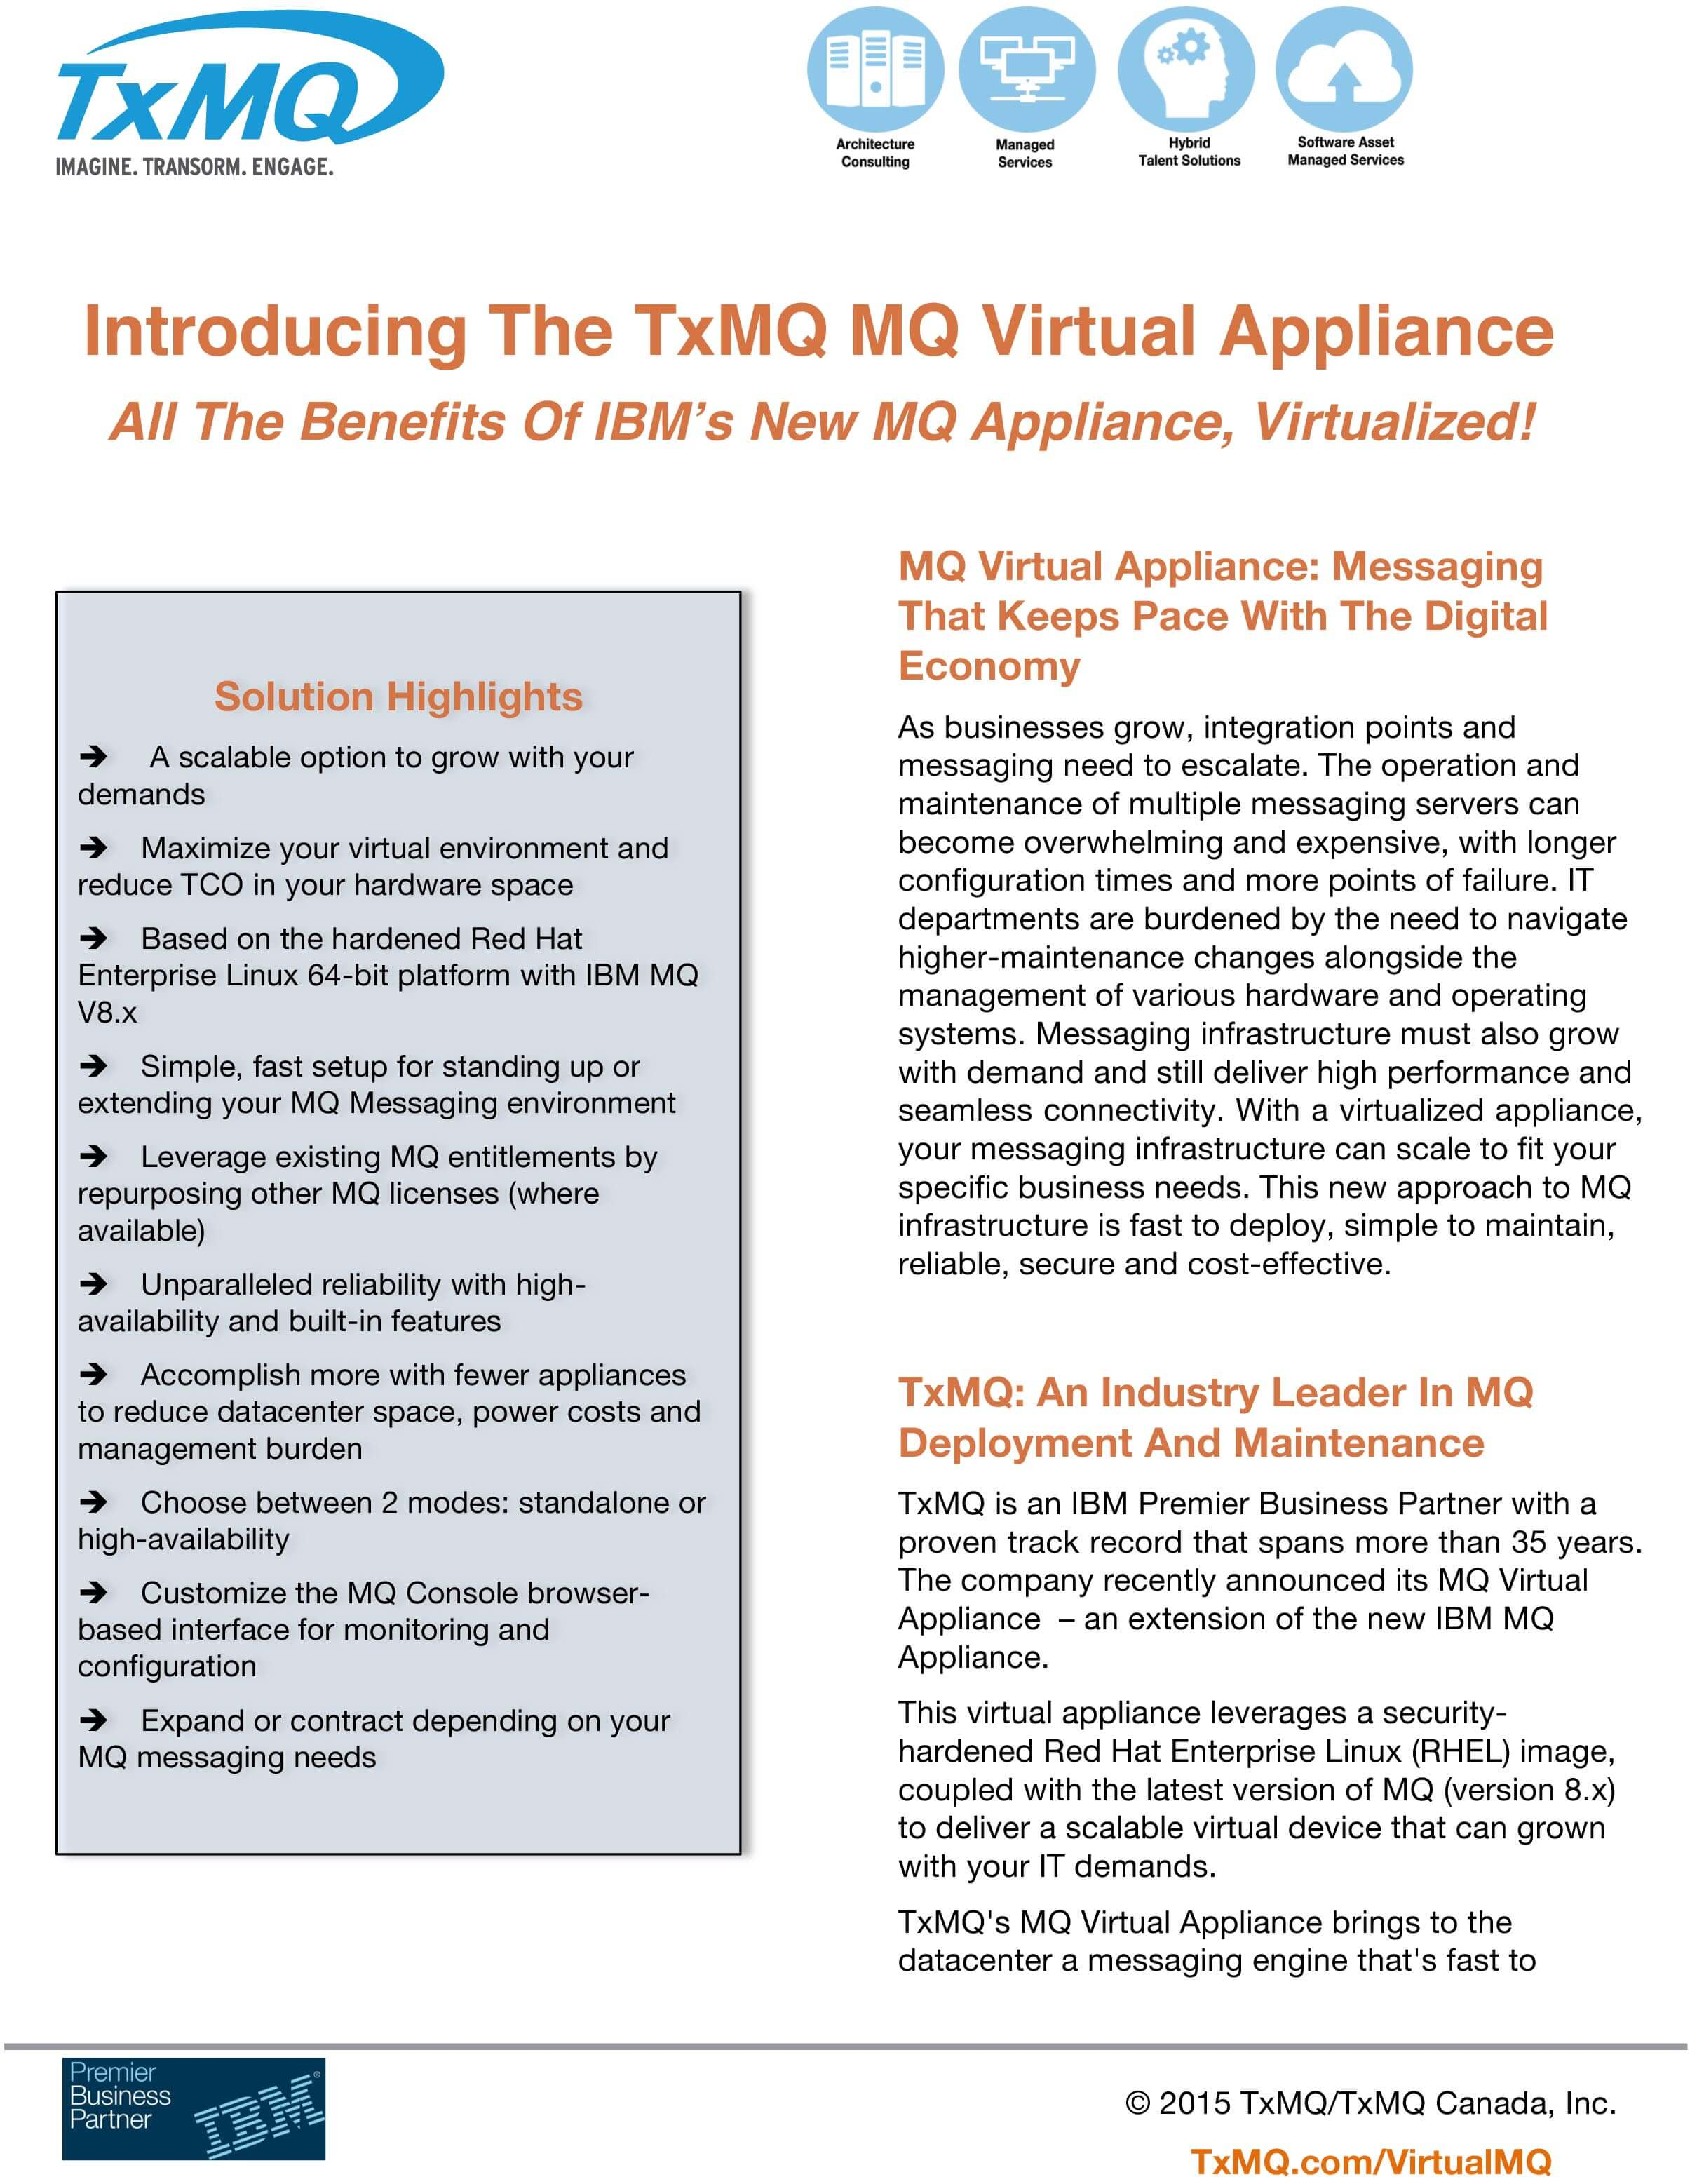 Image of TxMQ's MQ Virtual Appliance Product Sheet